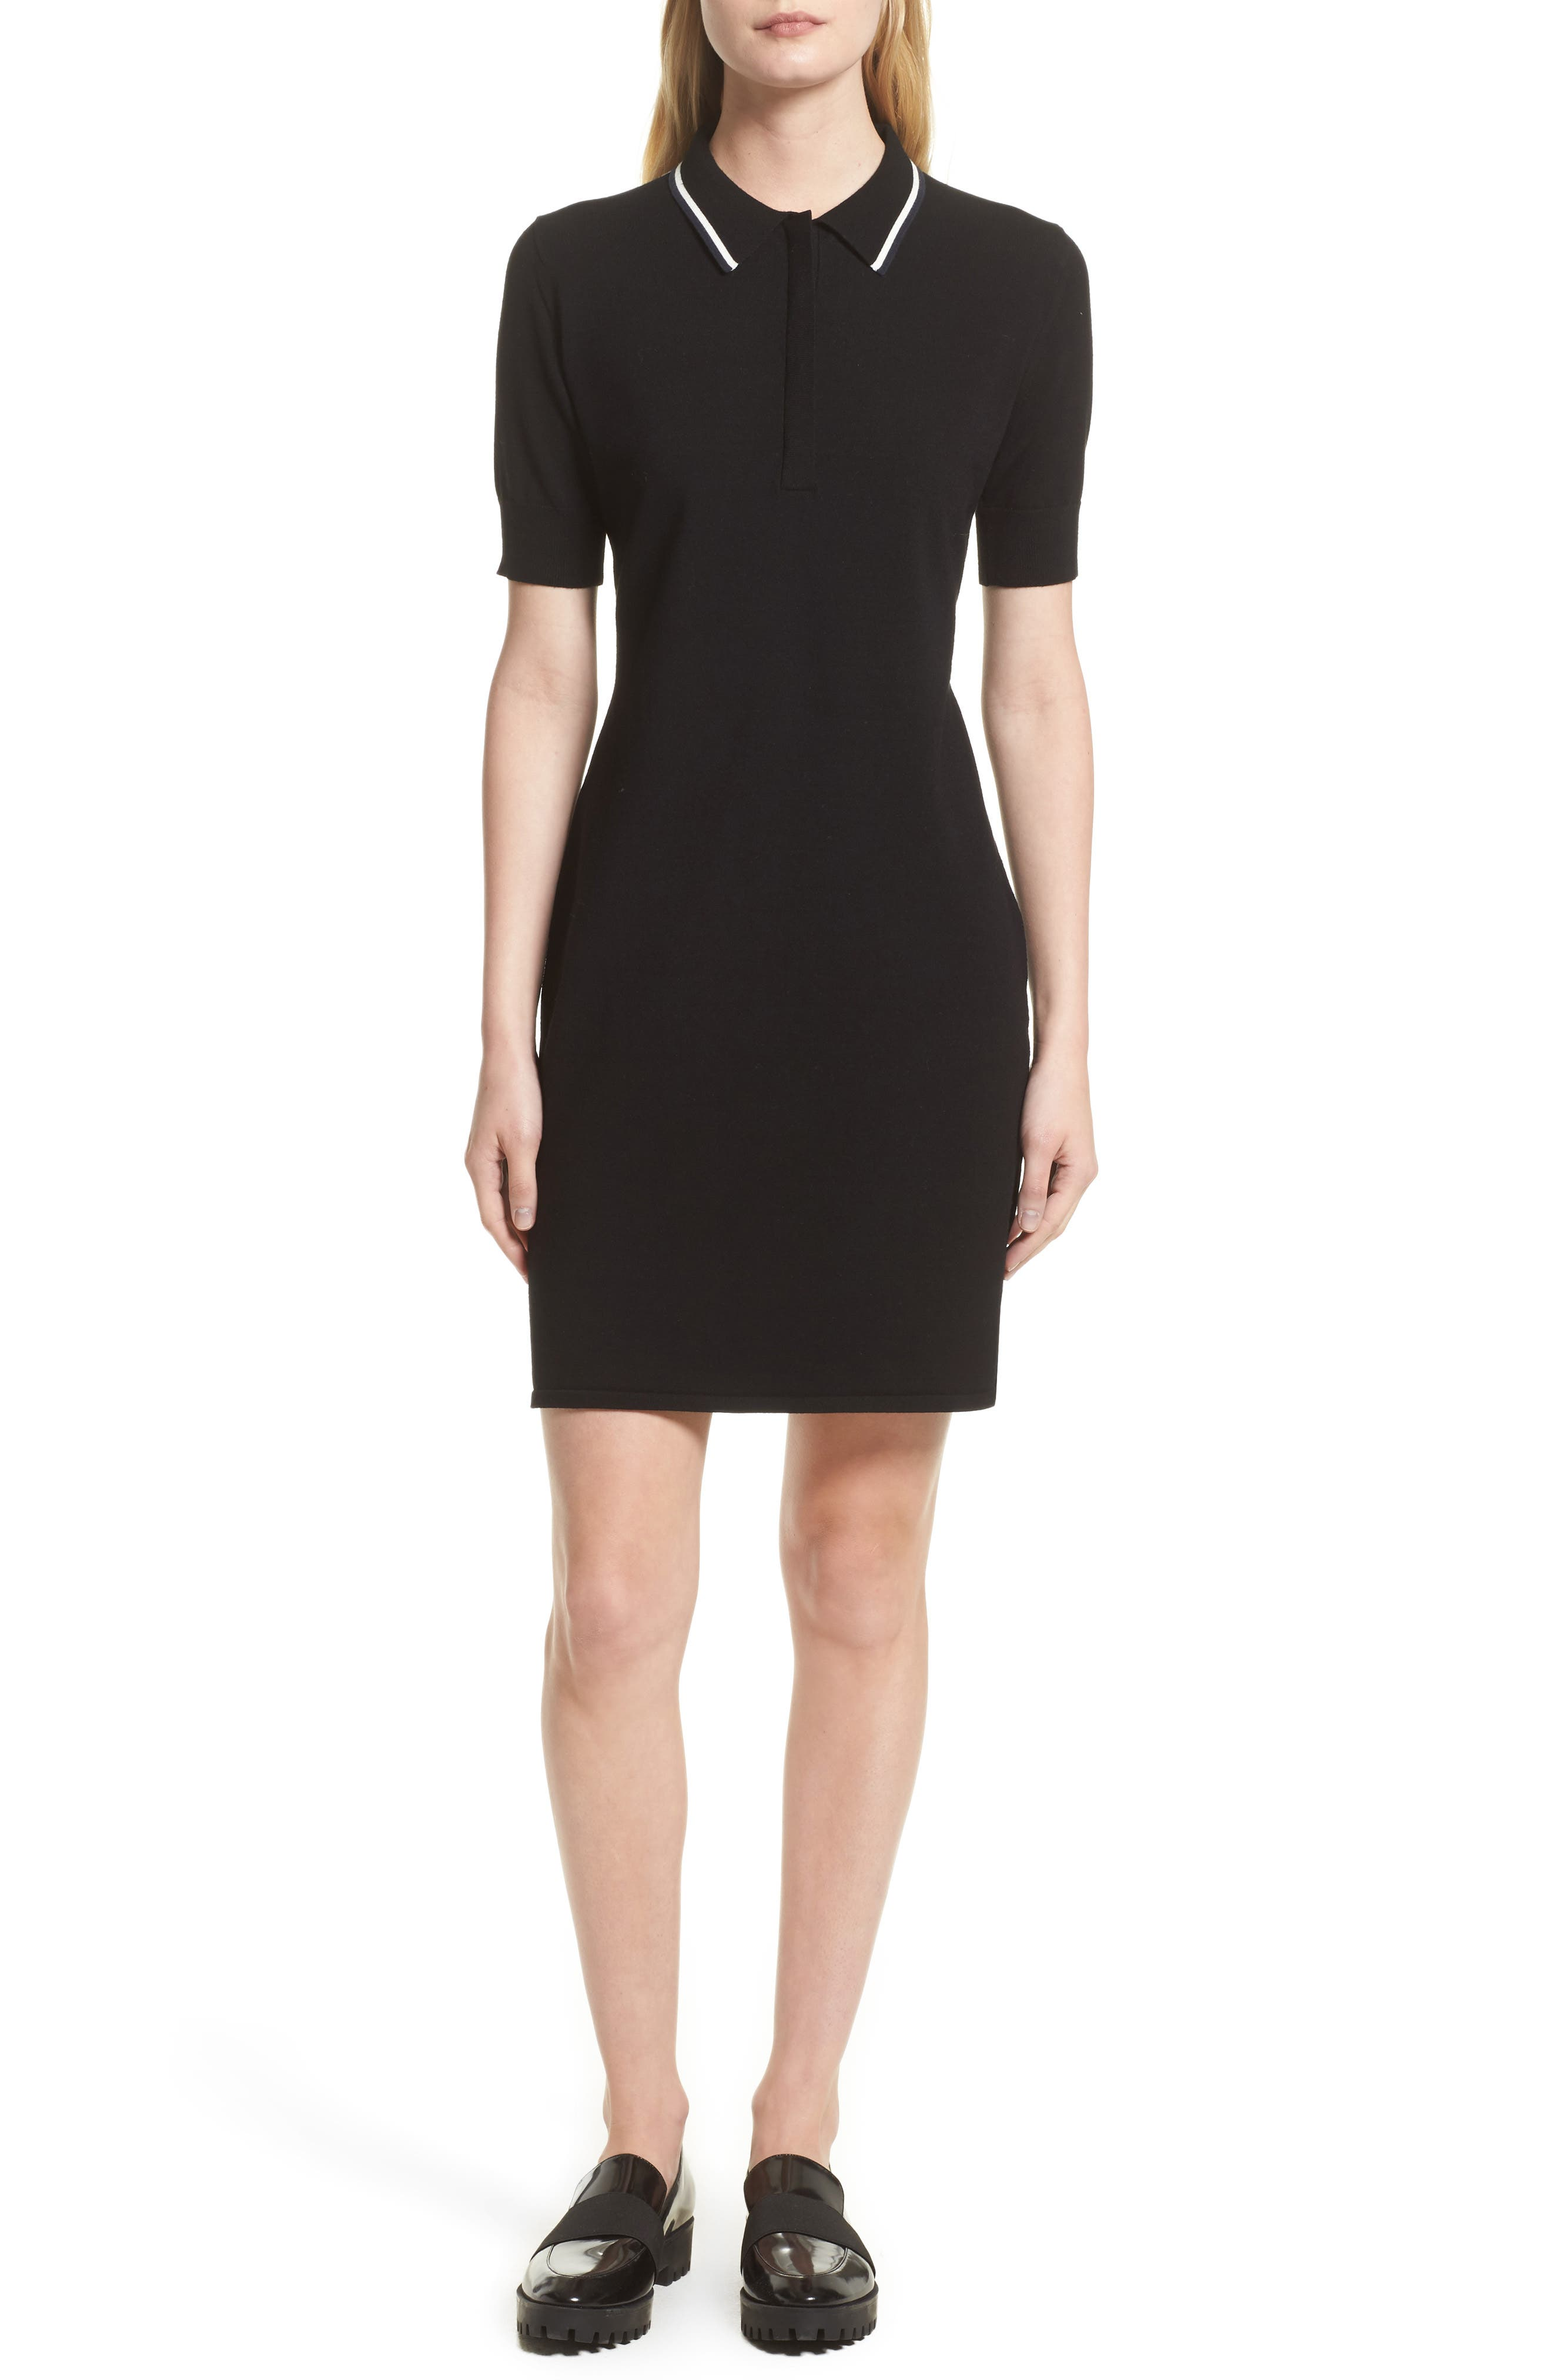 GREY Jason Wu Knit Polo Dress (Nordstrom Exclusive)